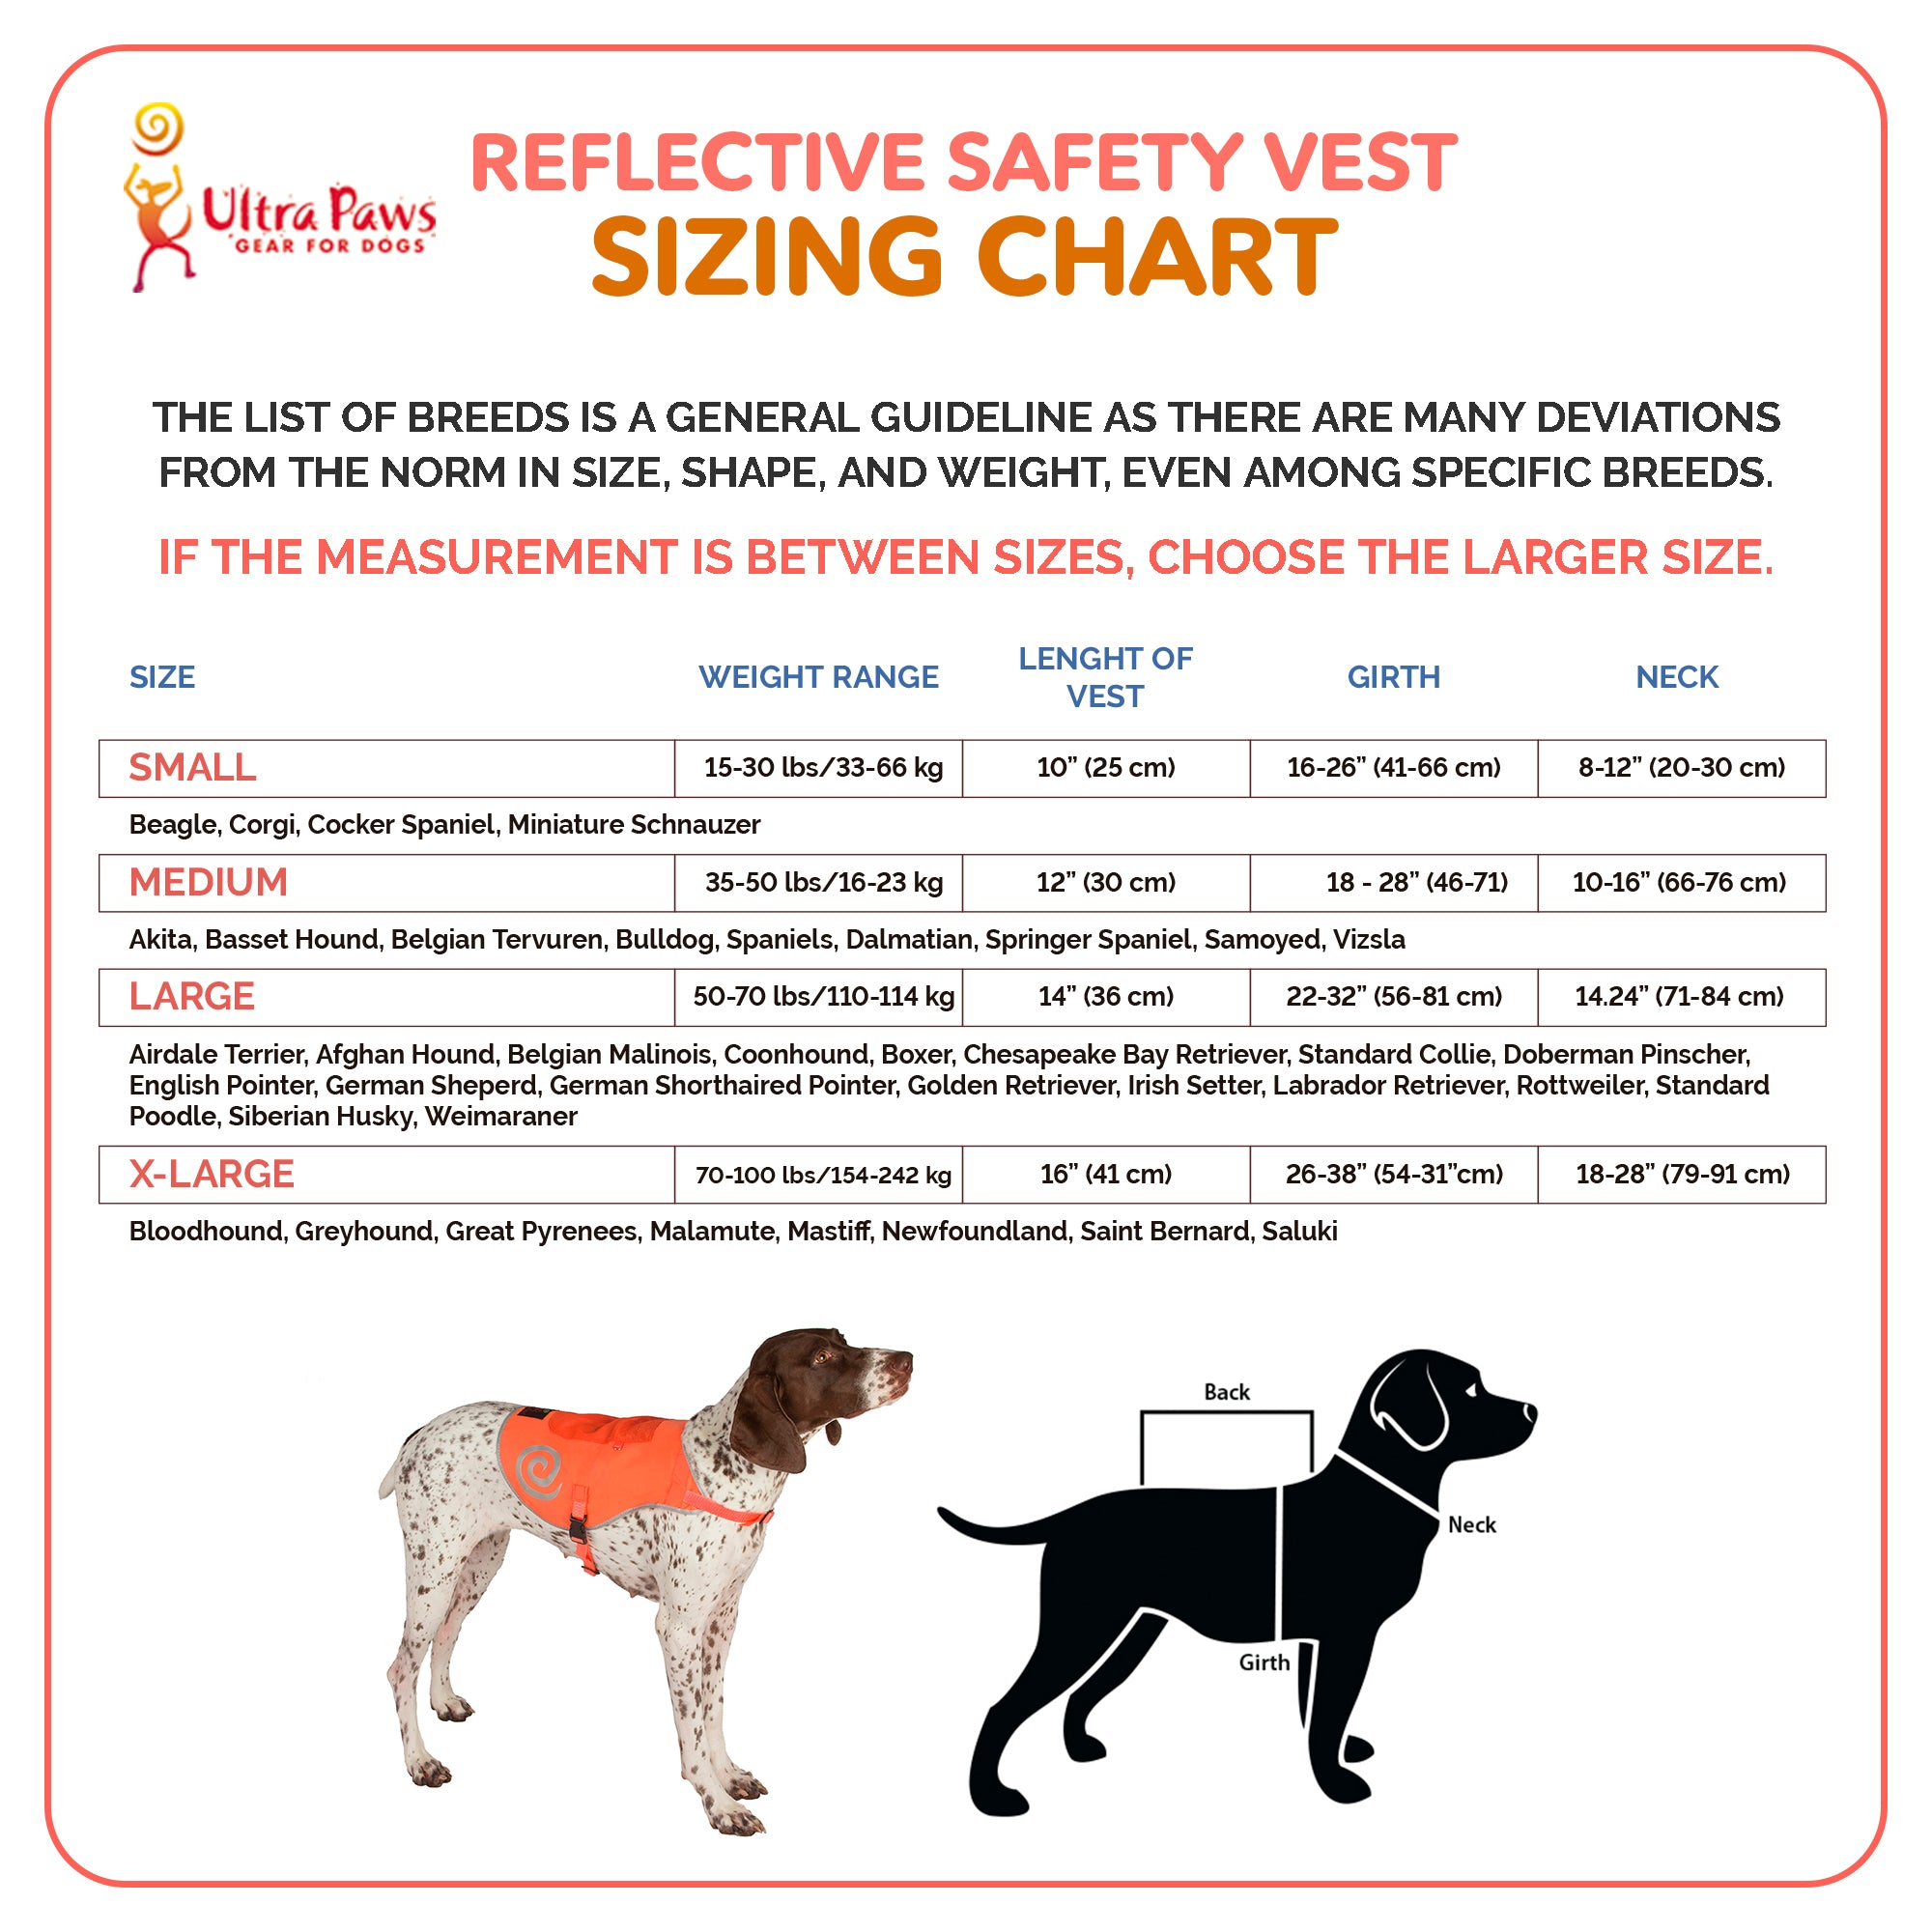 Ultra Paws Ultra Reflective Safety Vest Sizing Chart